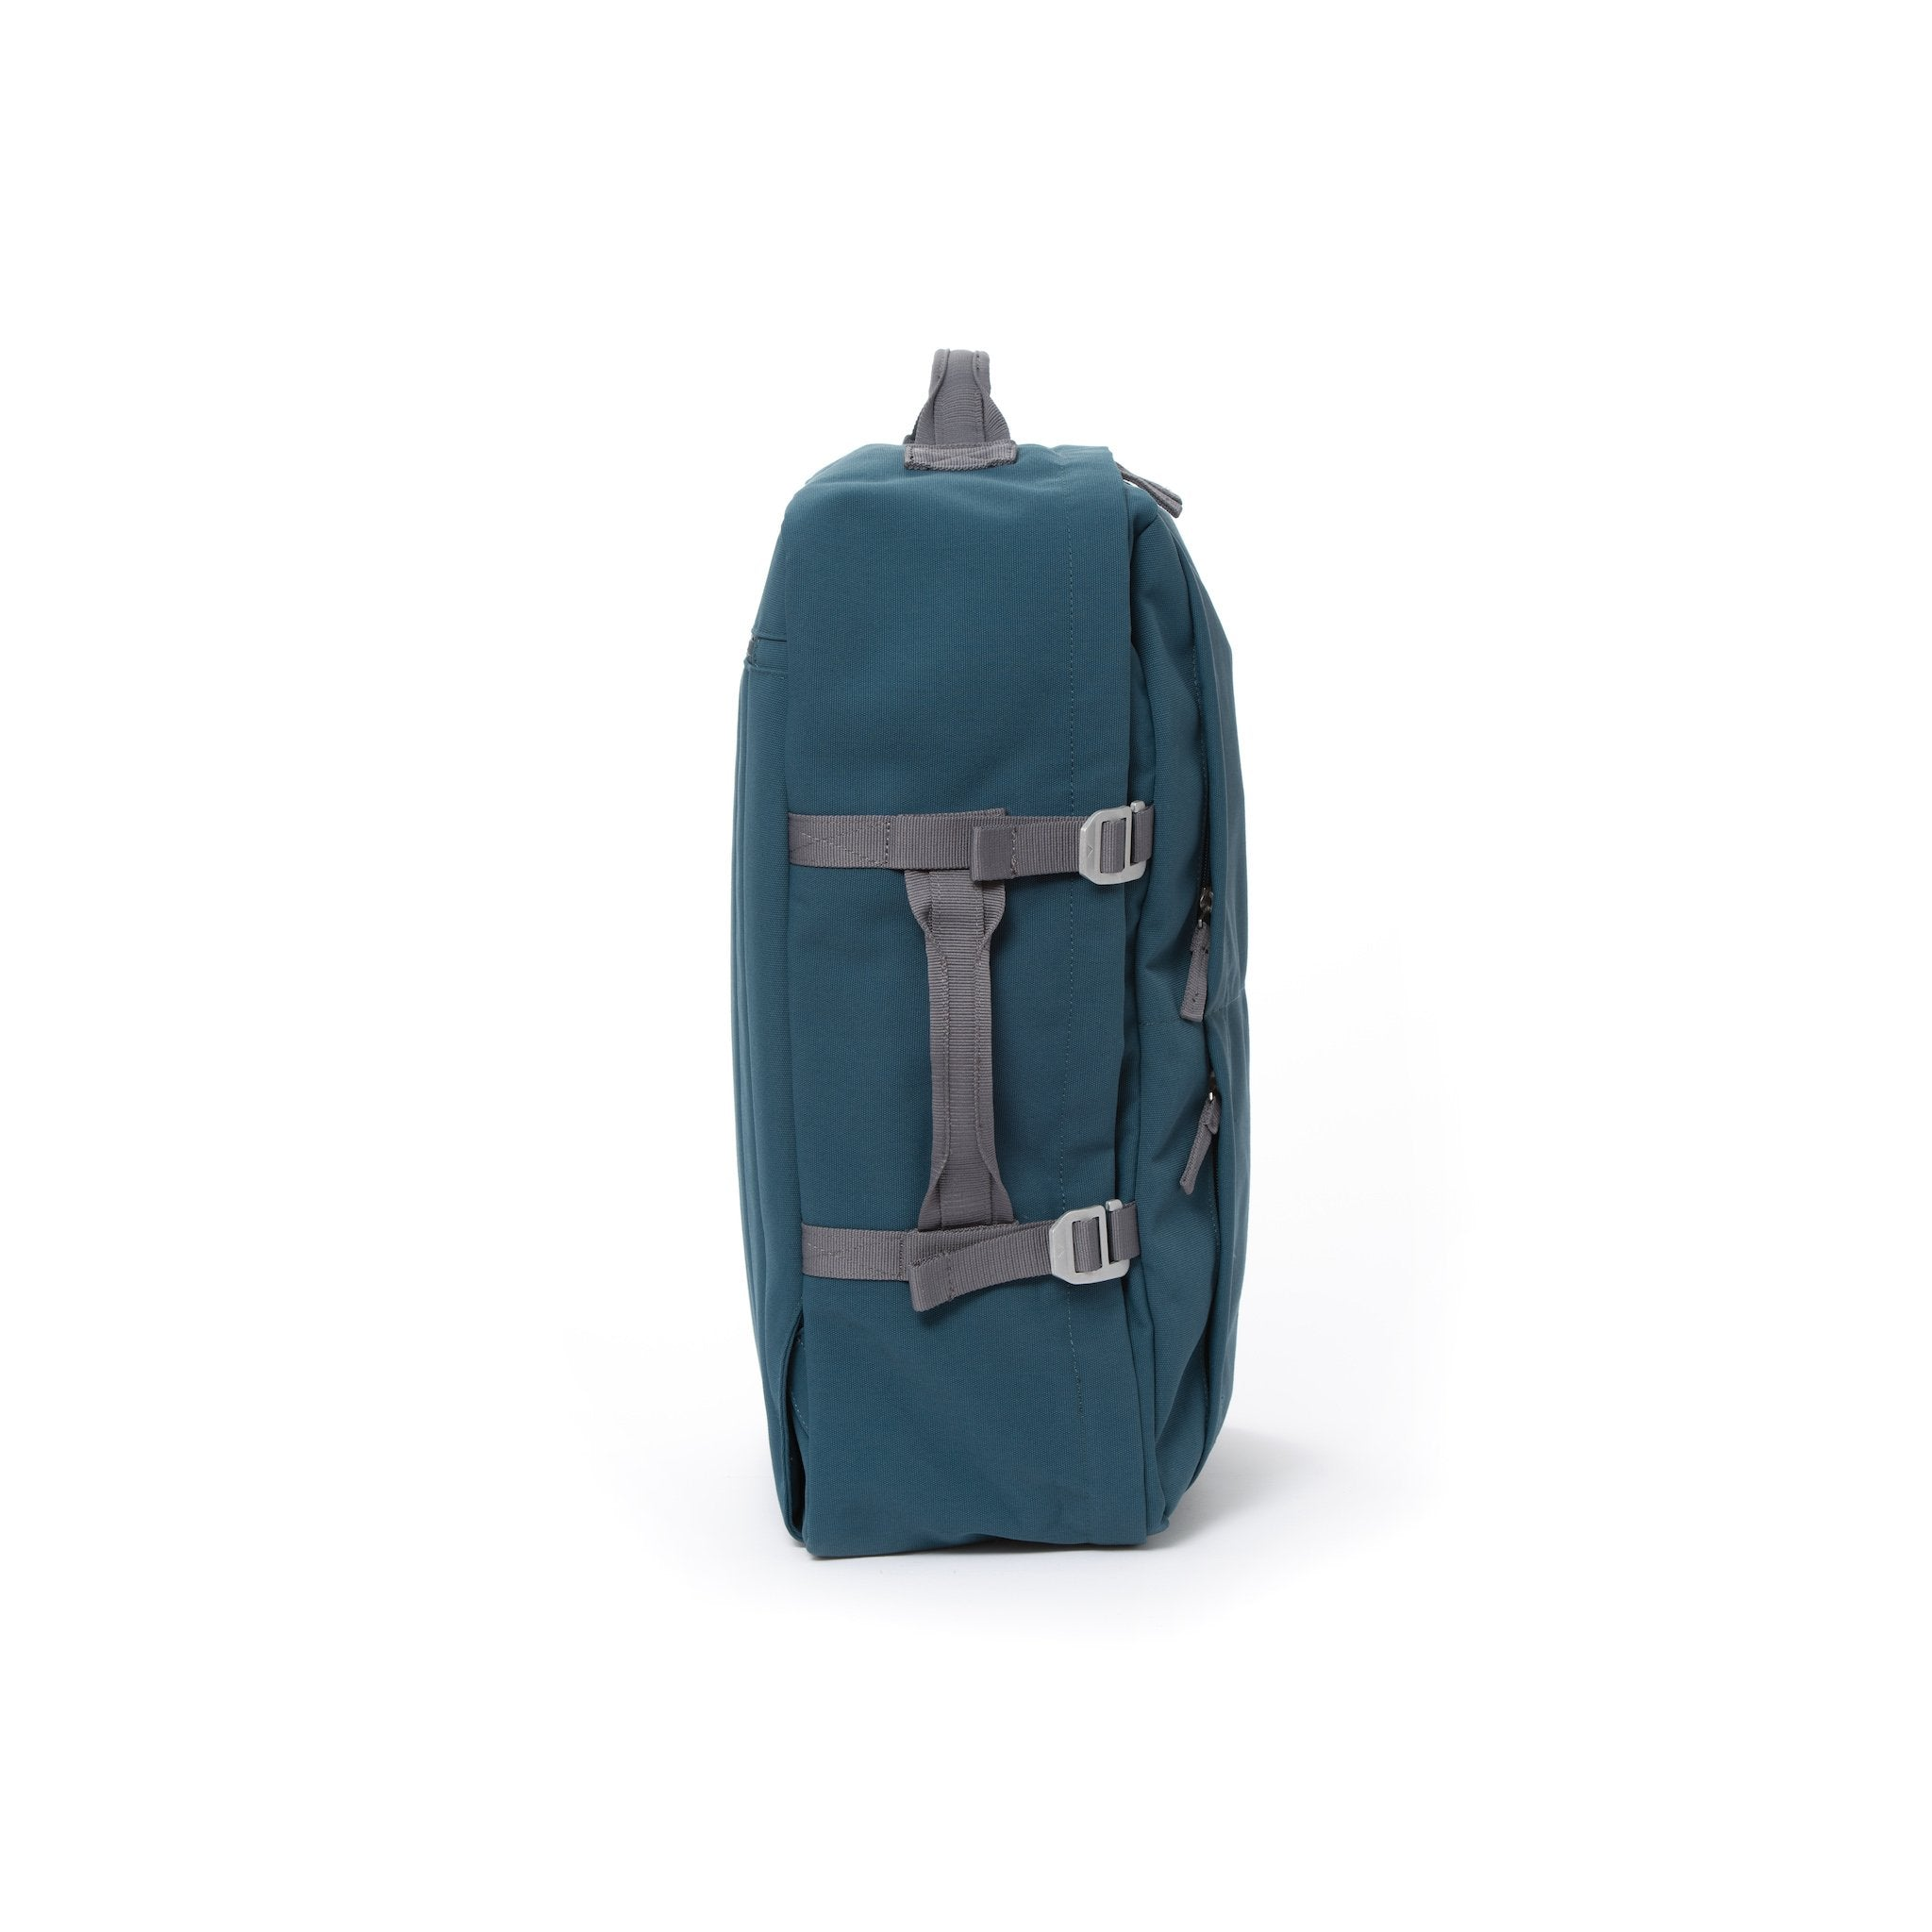 Blue recycled canvas travel backpack with compression side straps.